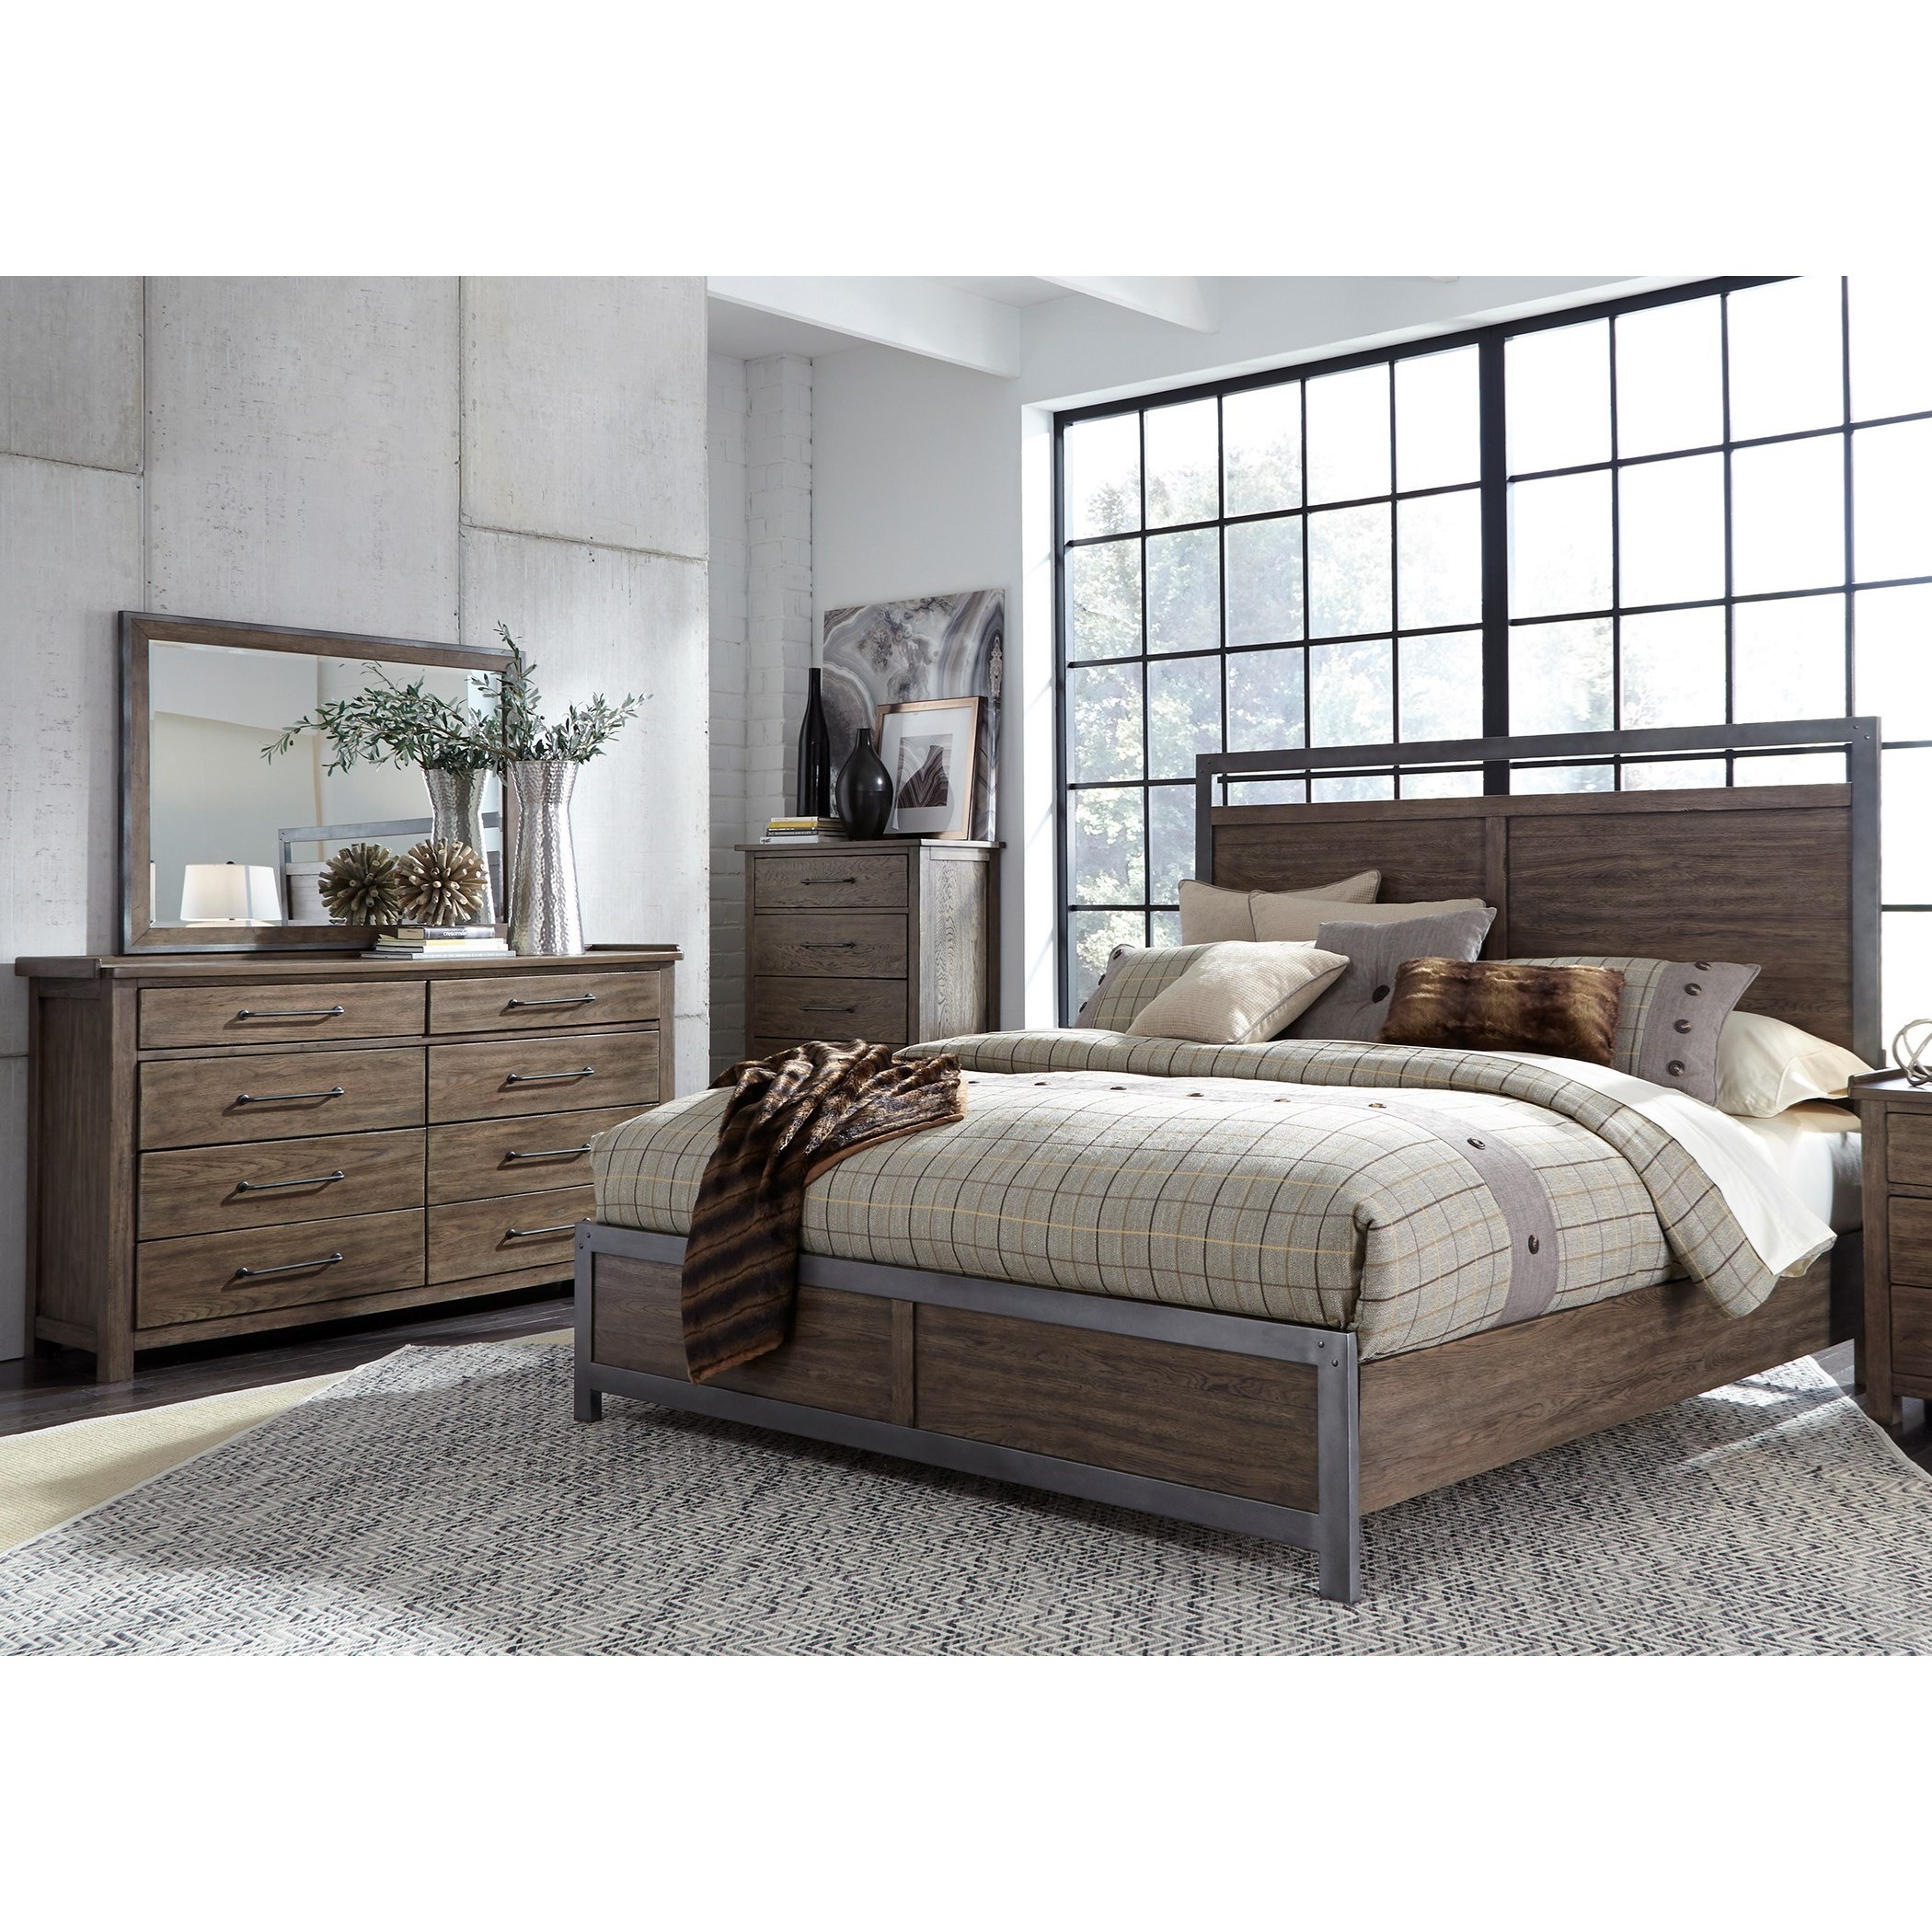 Sonoma Road Queen Bedroom Group  by Liberty Furniture at Wayside Furniture